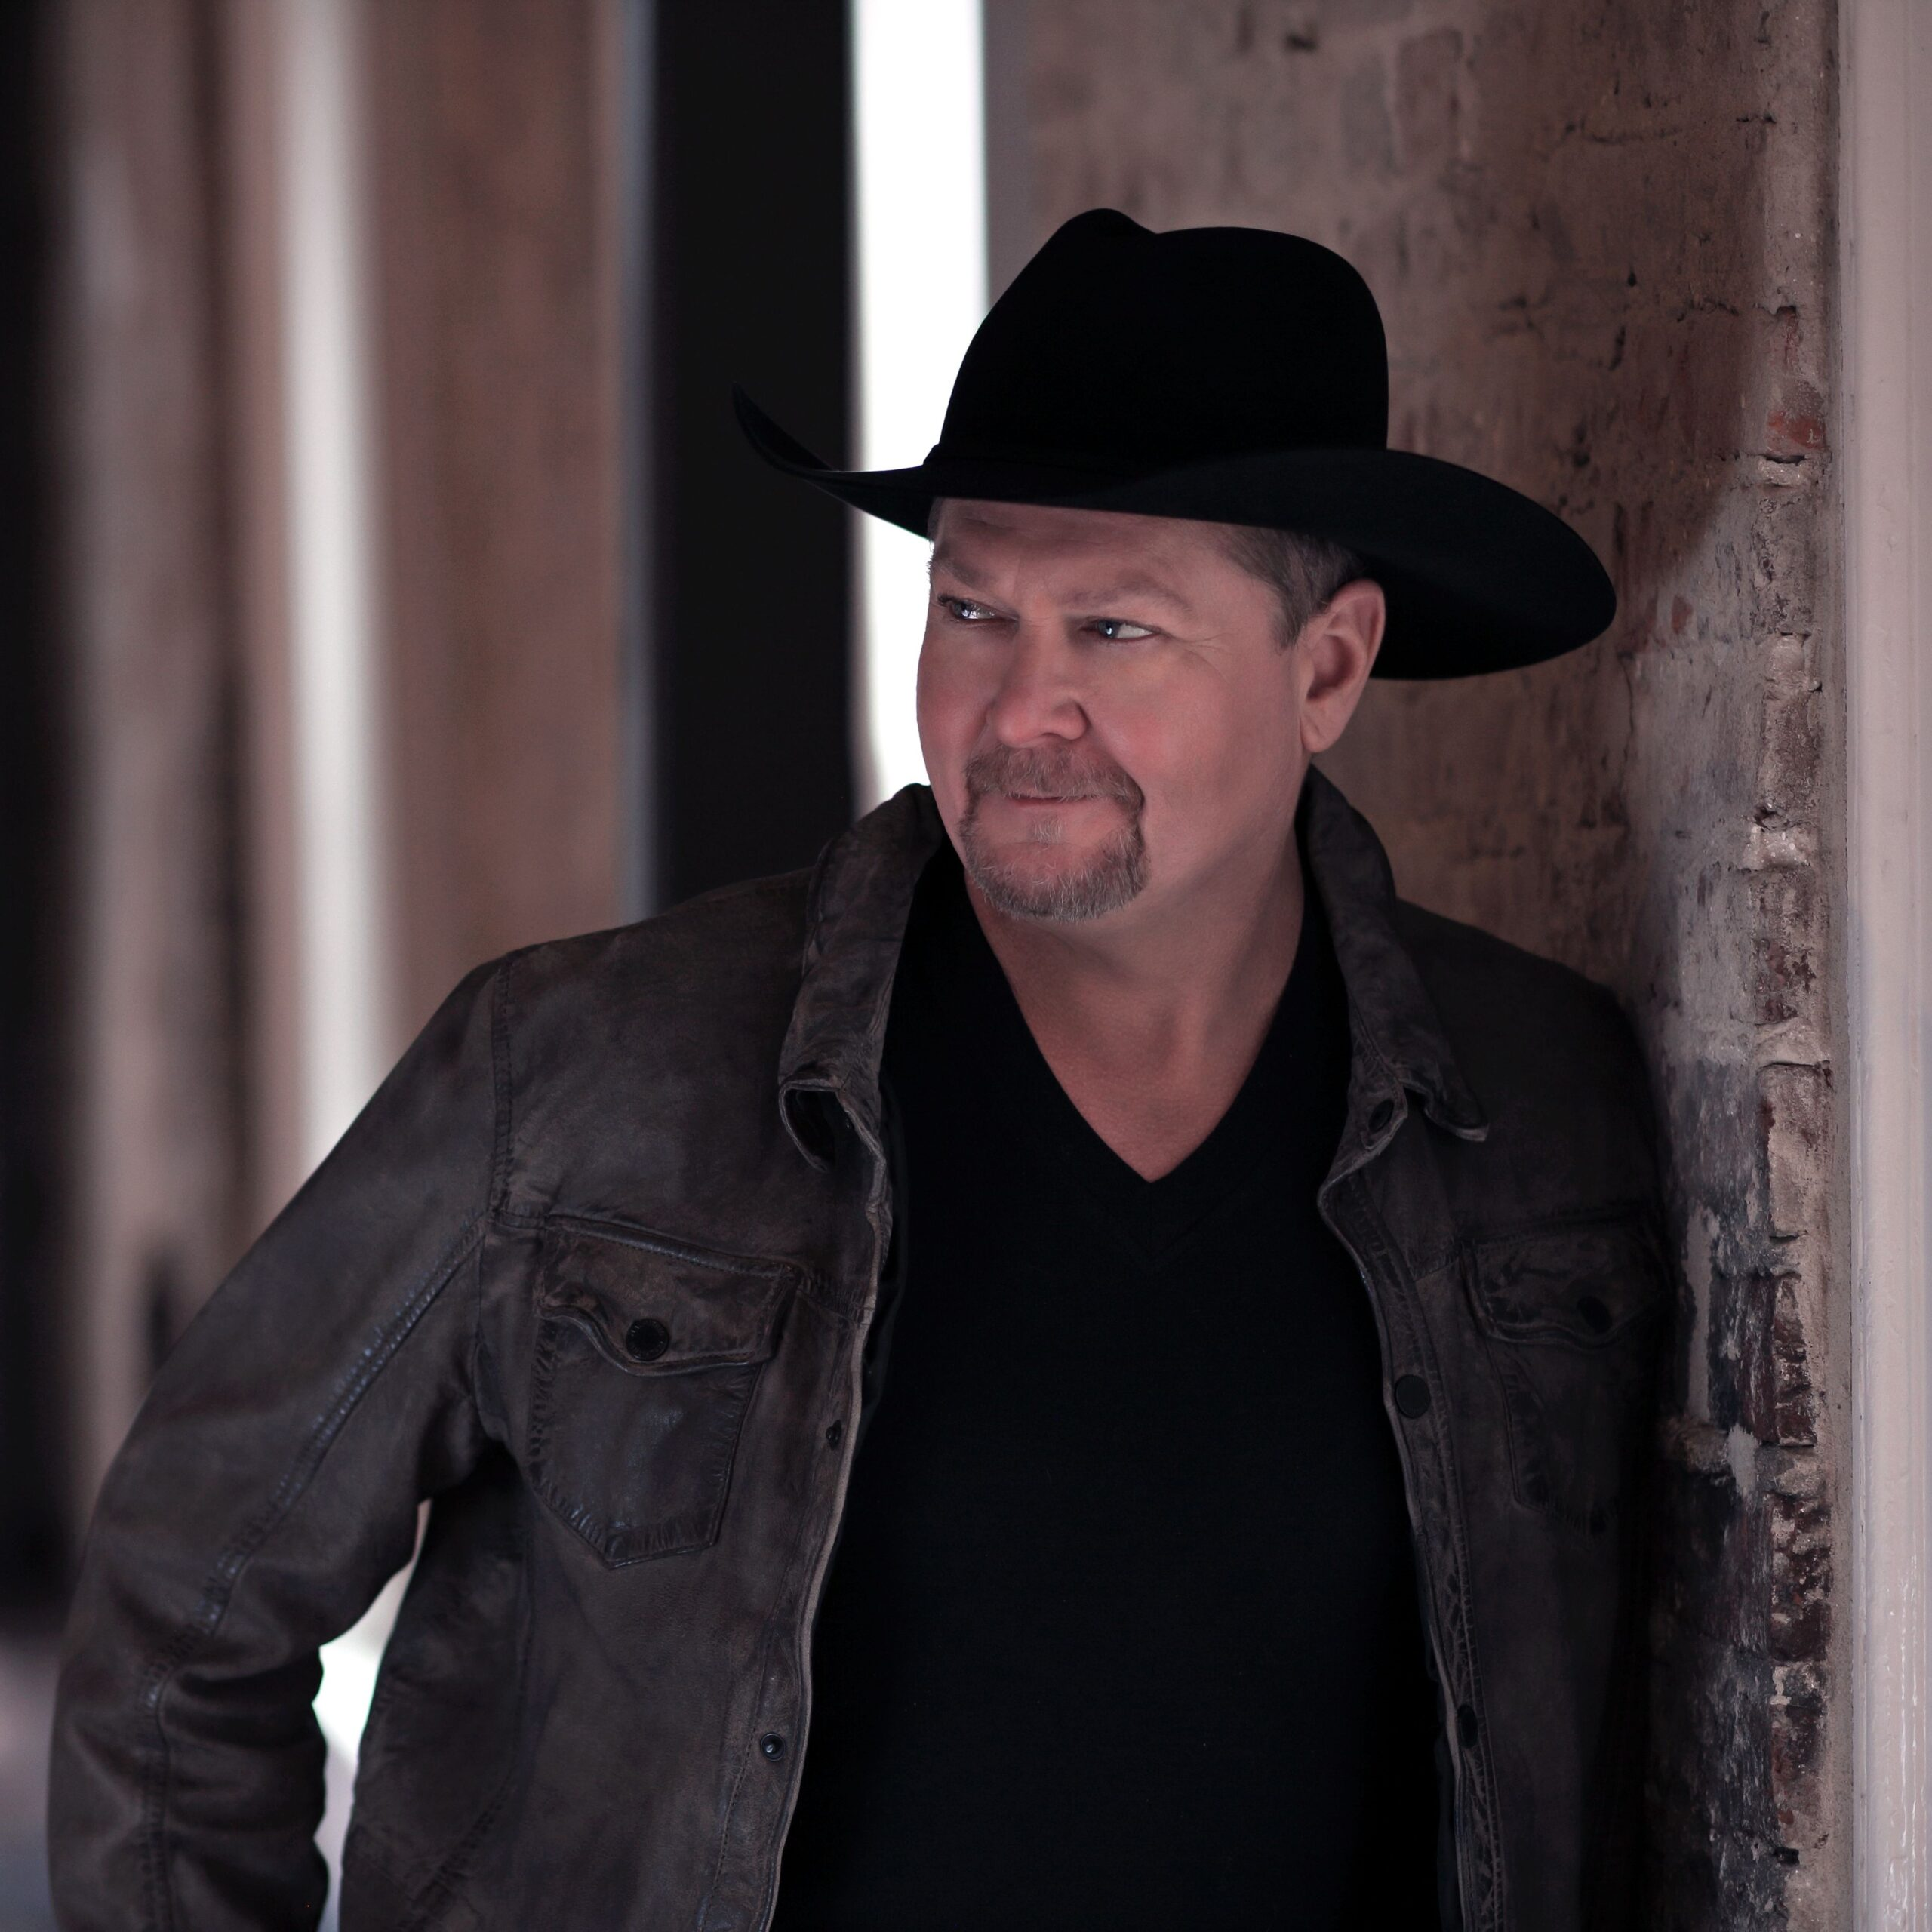 Tracy Lawrence via Jon-Paul Bruno for use by 360 Magazine